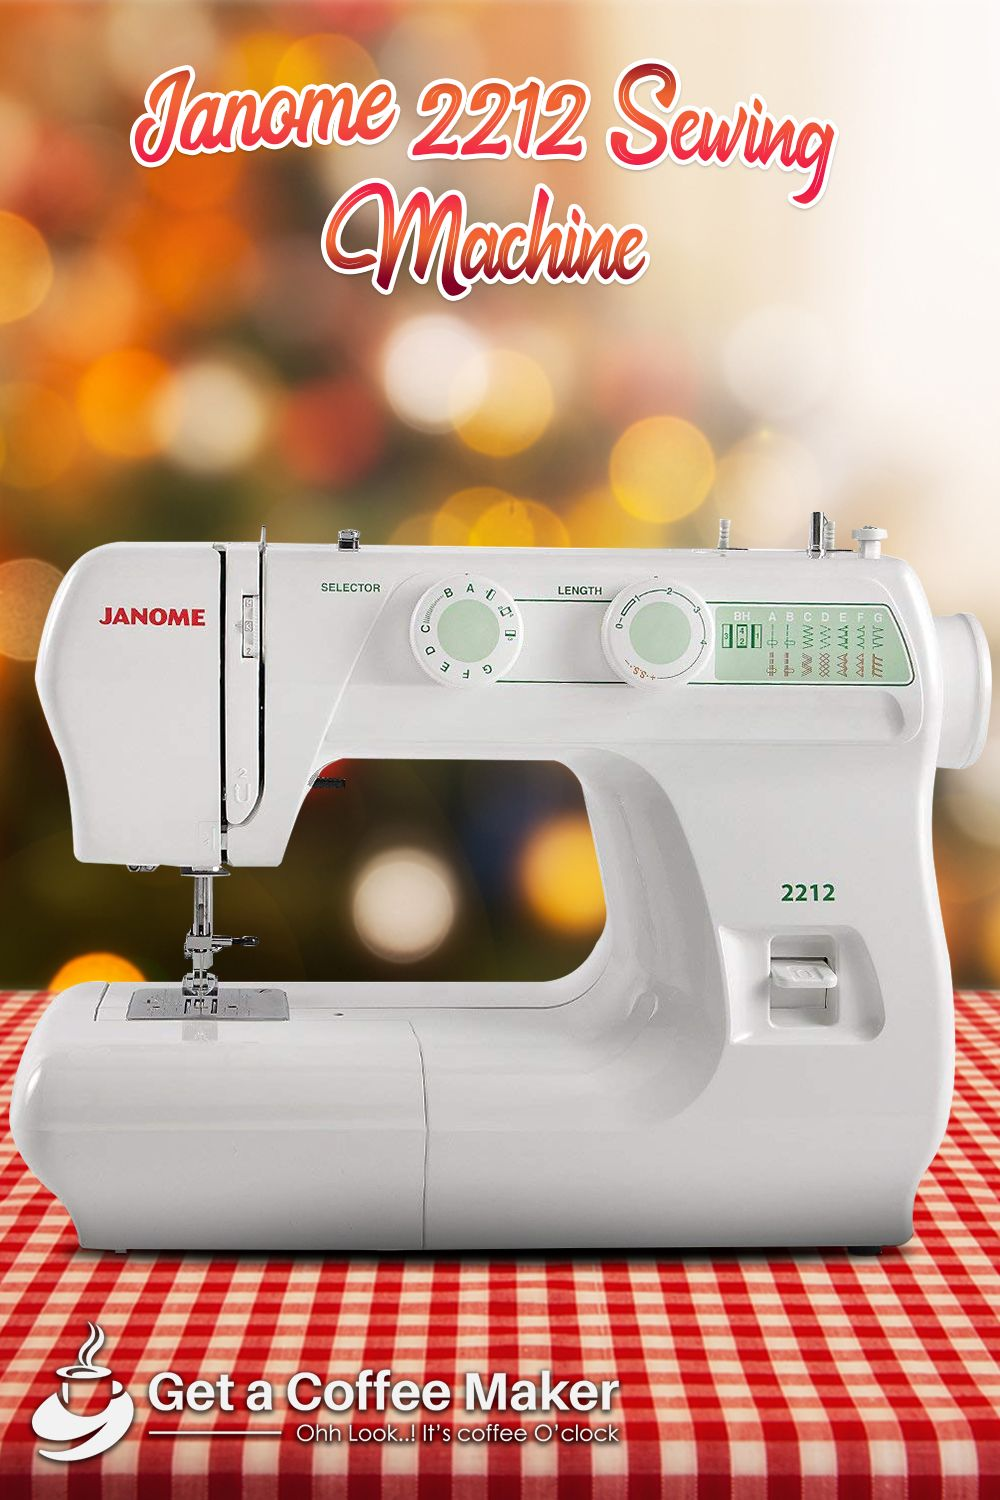 Top 10 Janome Sewing Embroidery Machines June 2020 Reviews Buyers Guide Janome Sewing Machine Models Embroidery Machine Reviews Janome Sewing Machine